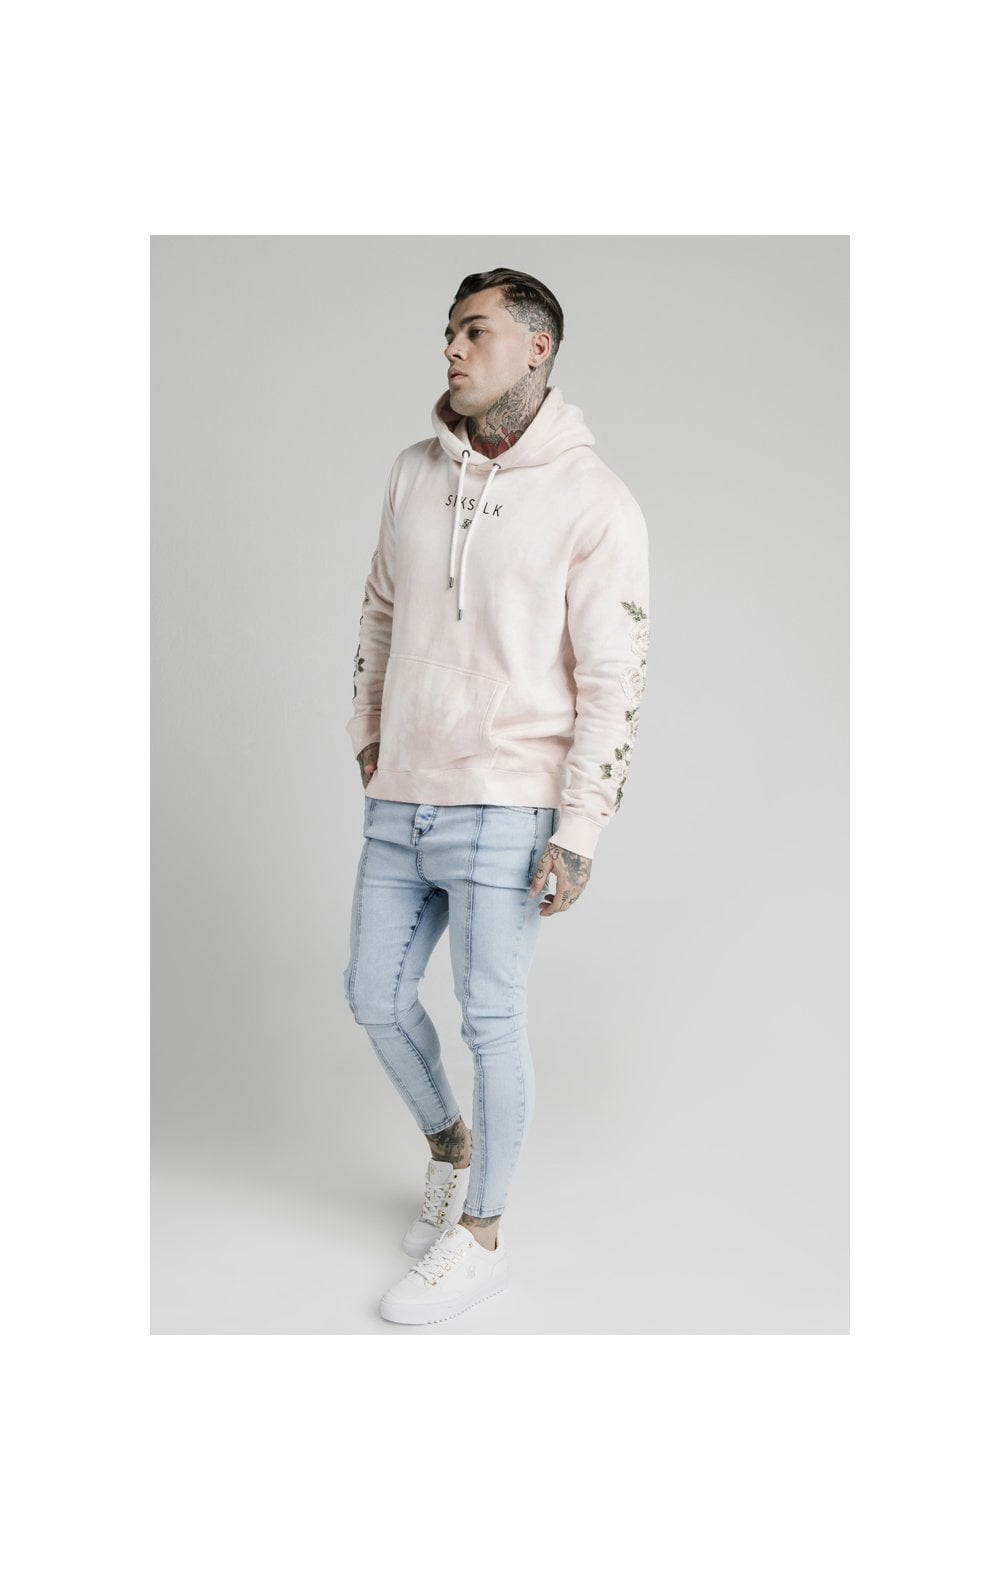 Load image into Gallery viewer, SikSilk Drop Crotch Pleated Applique Denims - White (3)